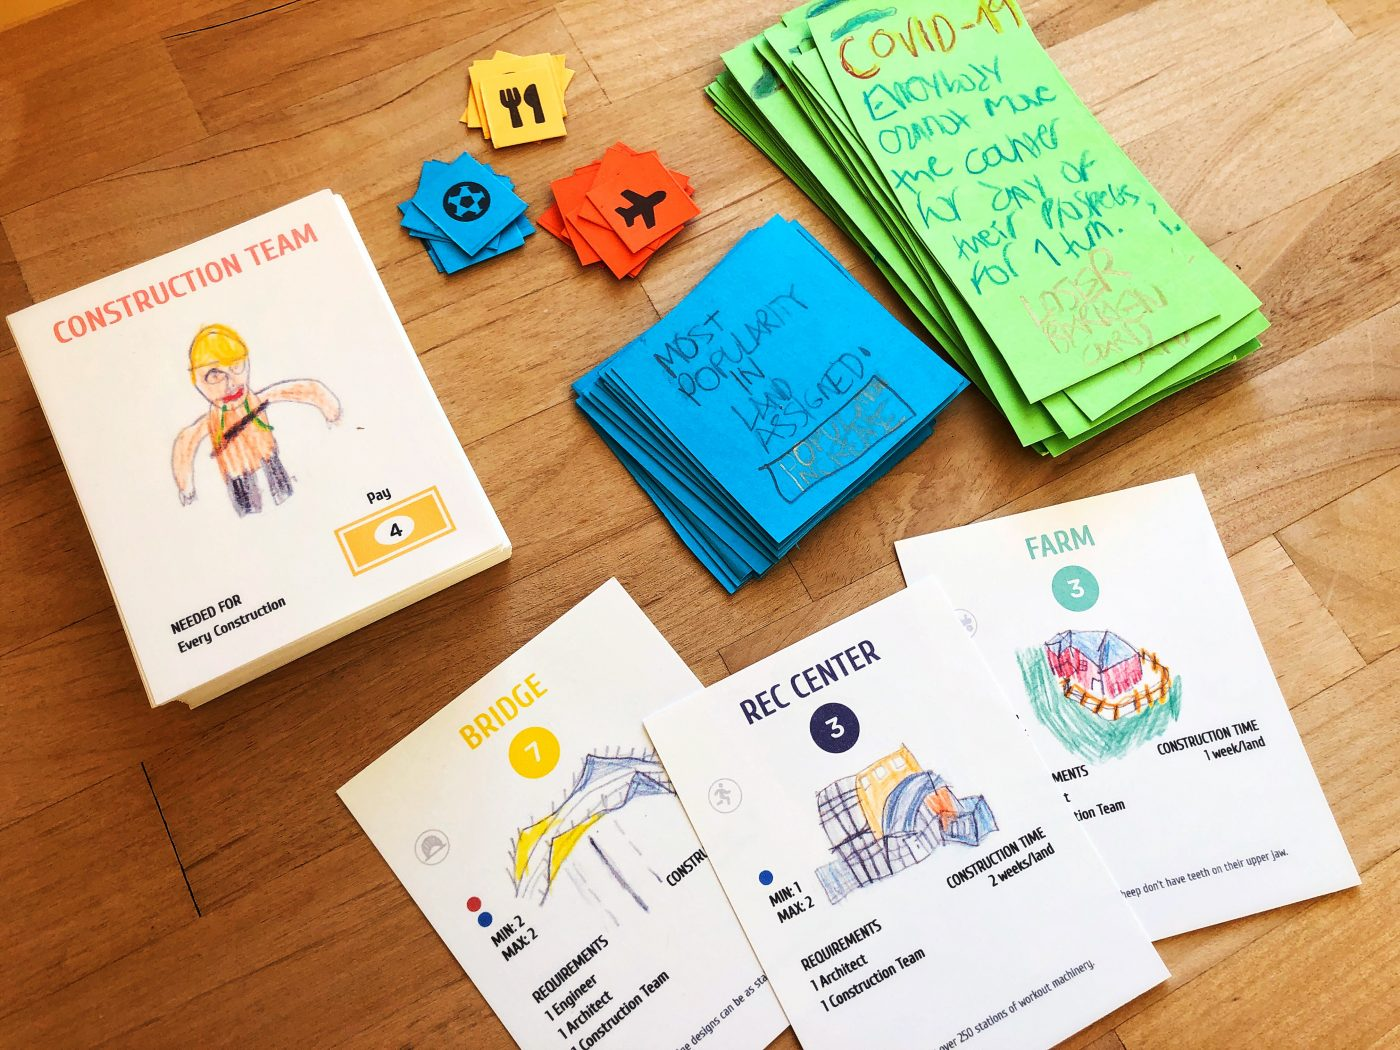 Some of the materials: Prospect cards, Worker cards, Barren cards, Bonus cards, and building tokens